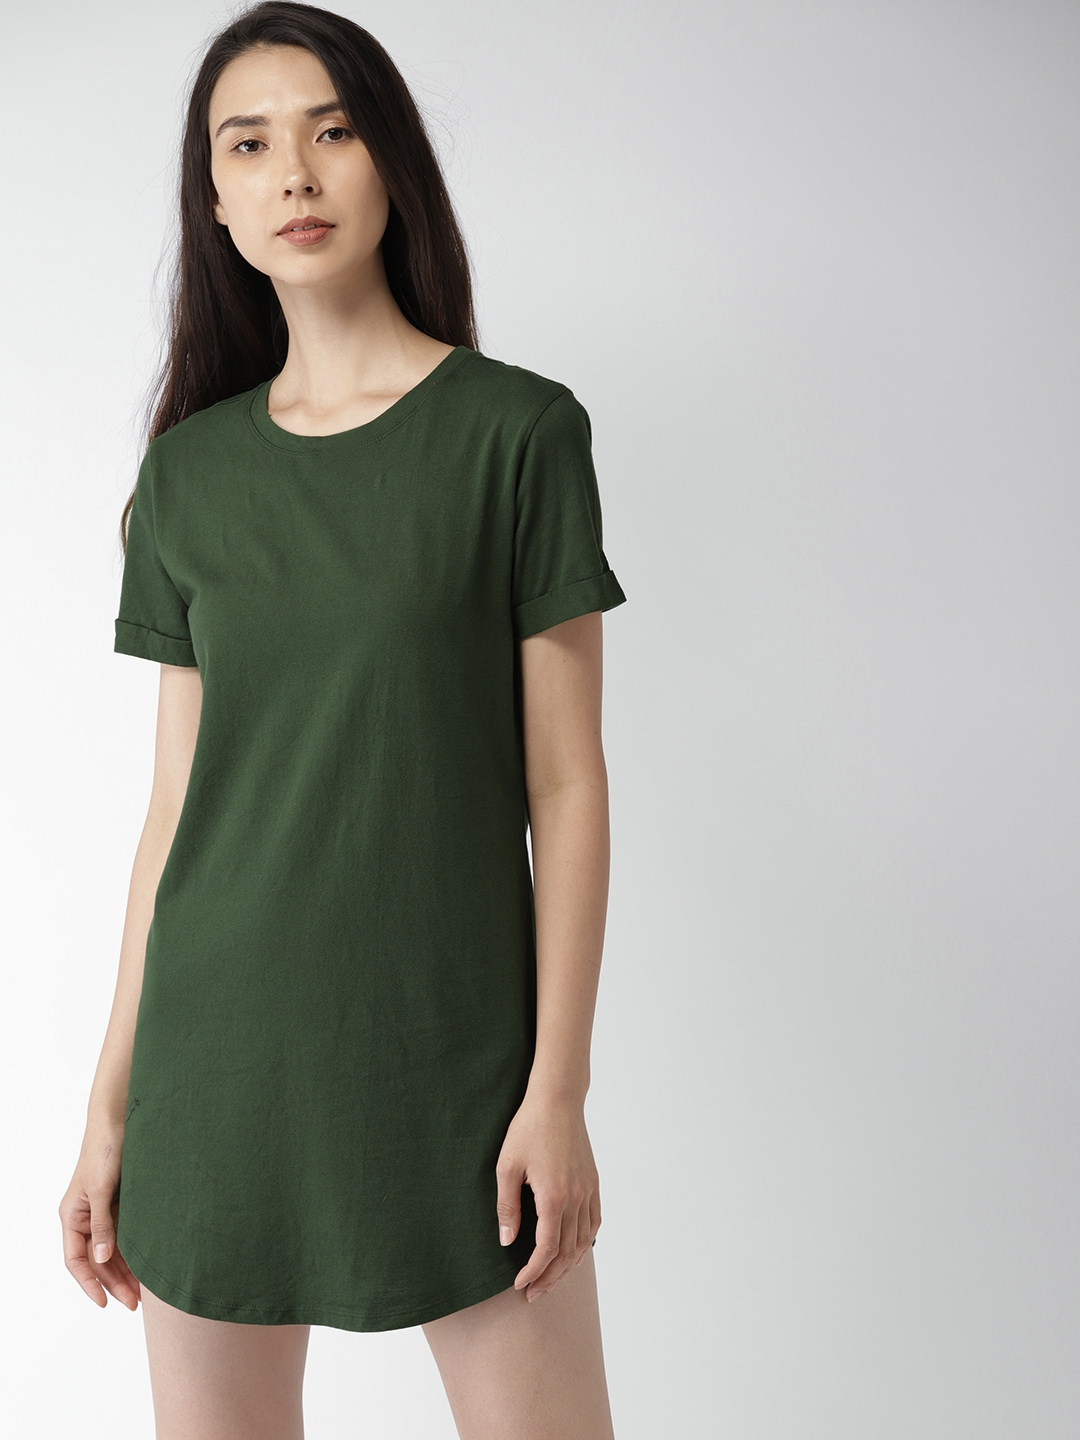 ef9df2d83e0b Buy FOREVER 21 Women Green Solid T Shirt Dress - Dresses for Women ...